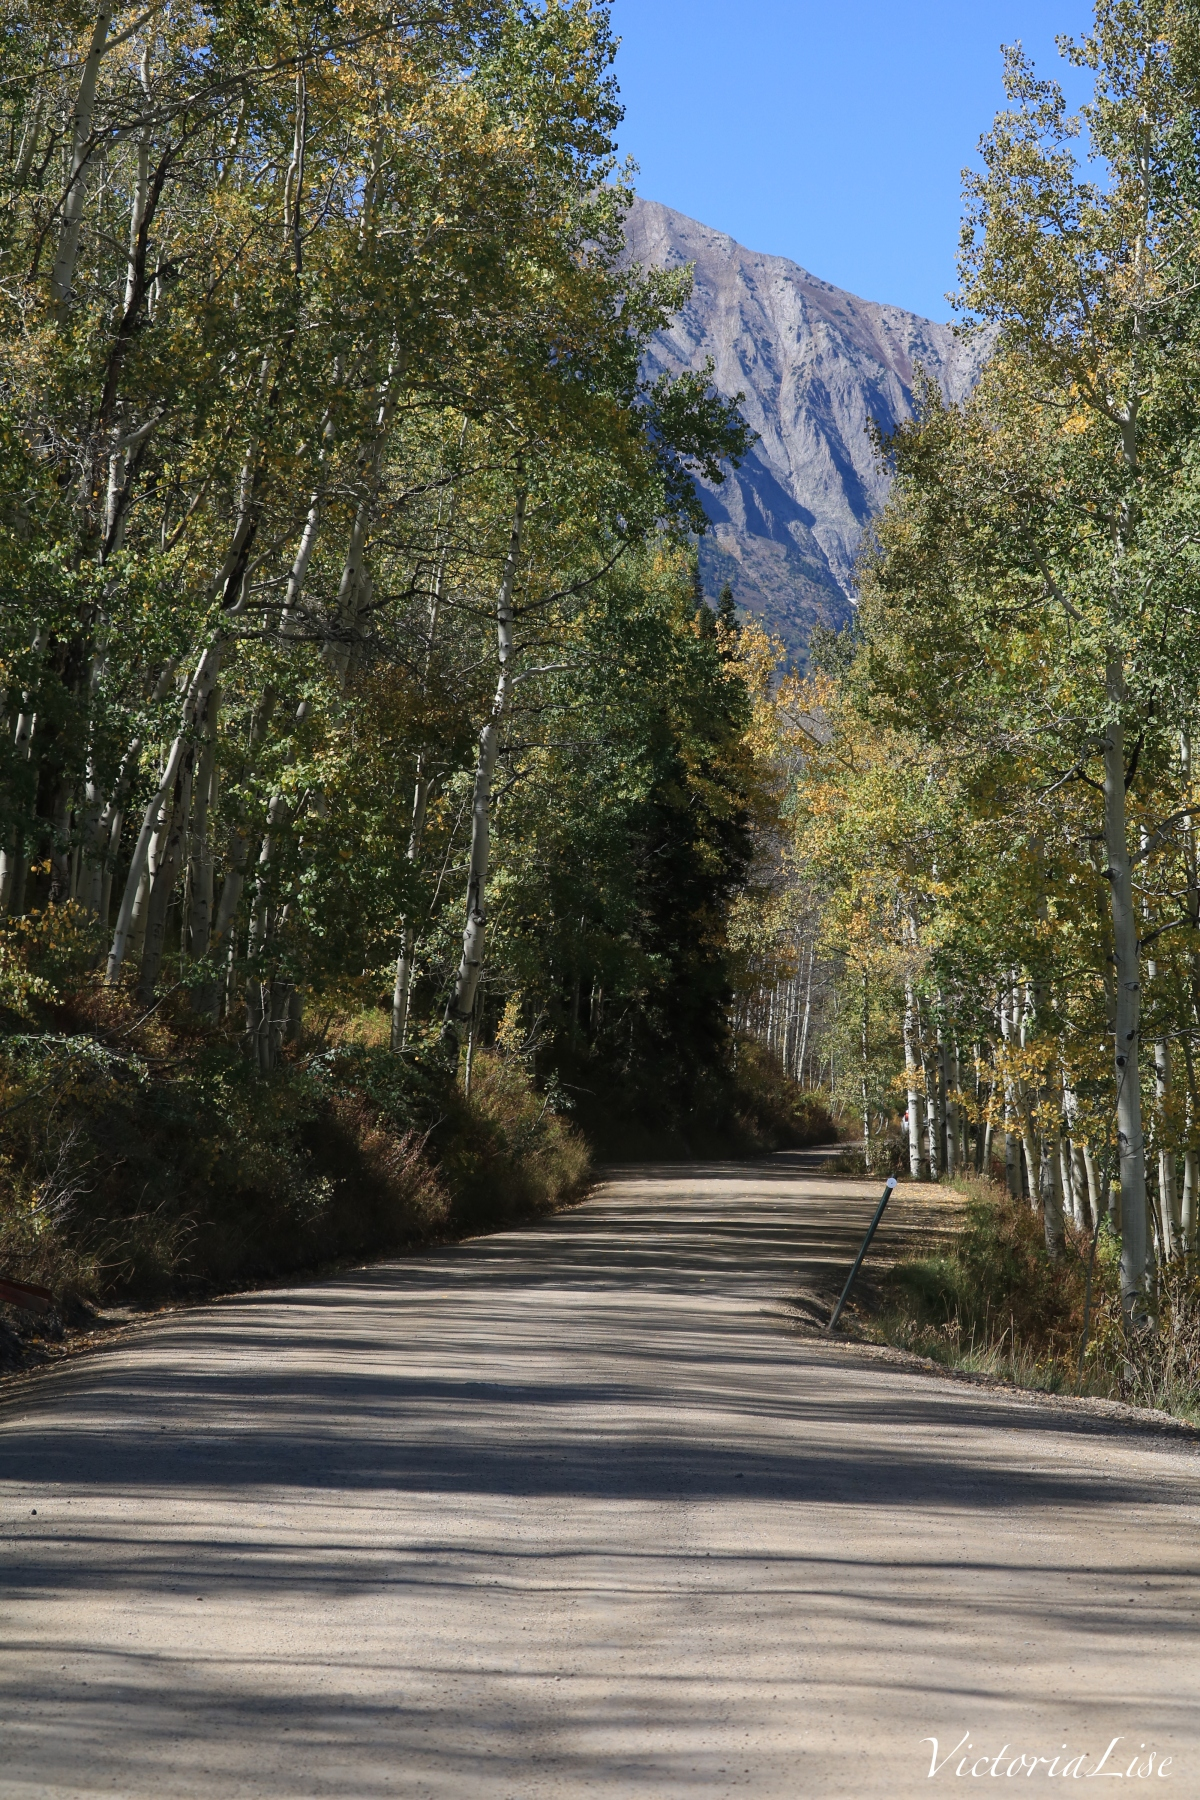 Dirt road lined with Aspens enroute to Gothic Mountain